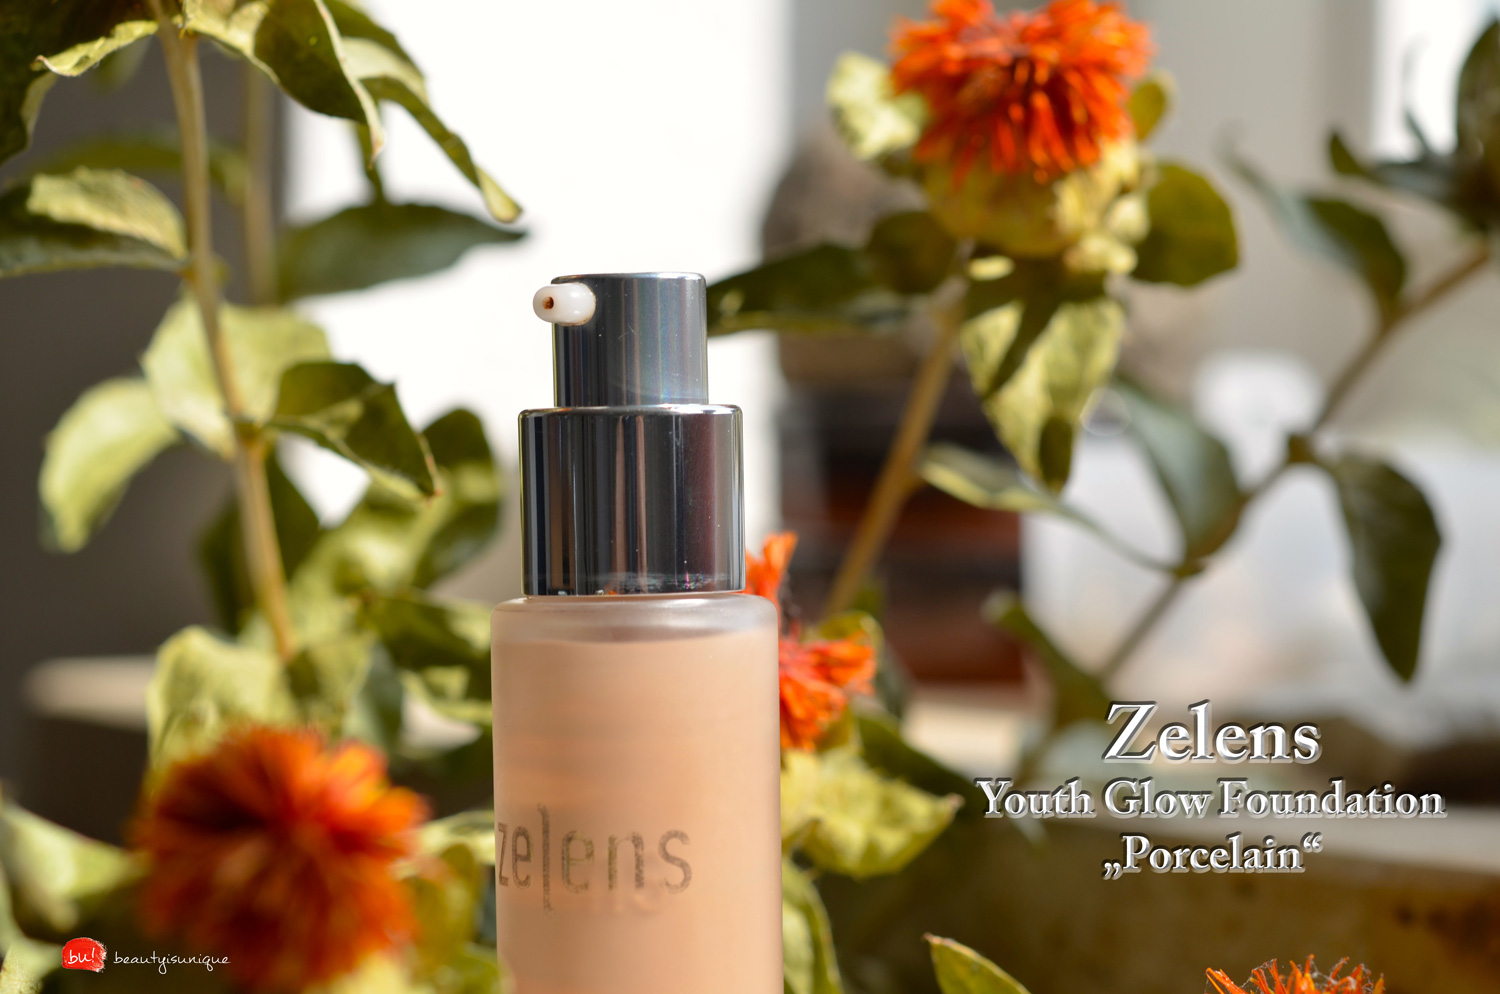 Zelens-youth-.glow-foundation-porcelain